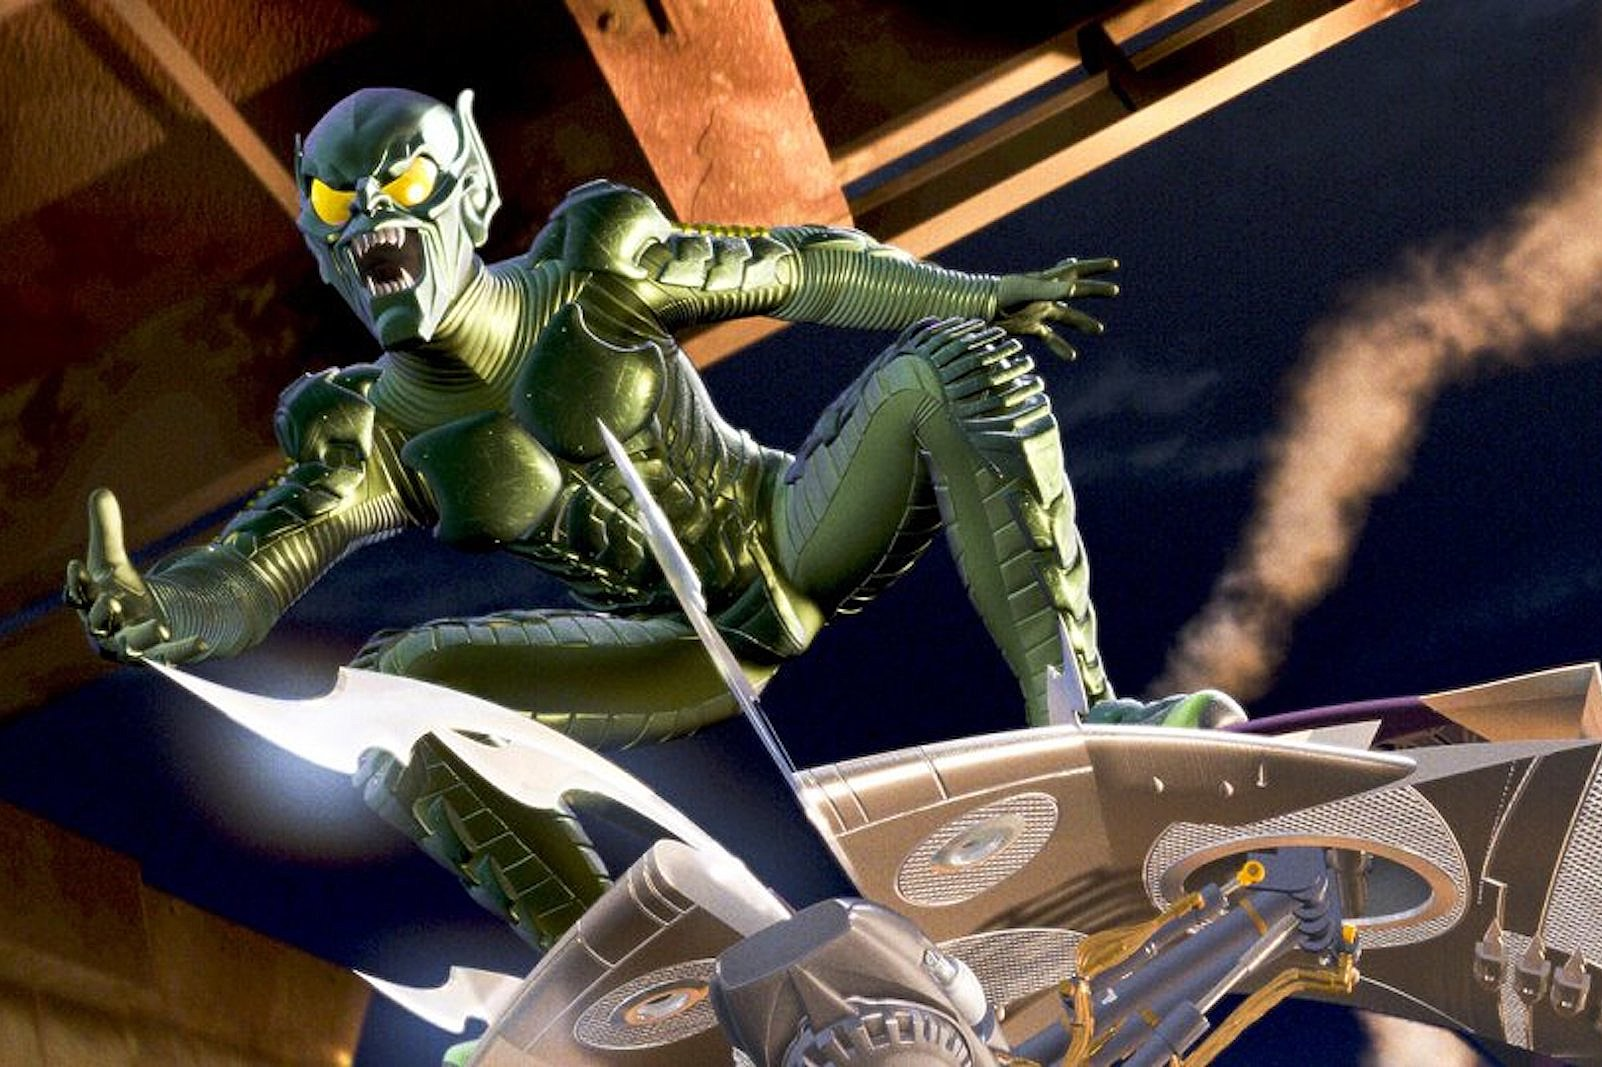 A French Inventor Created a Working Green Goblin Glider